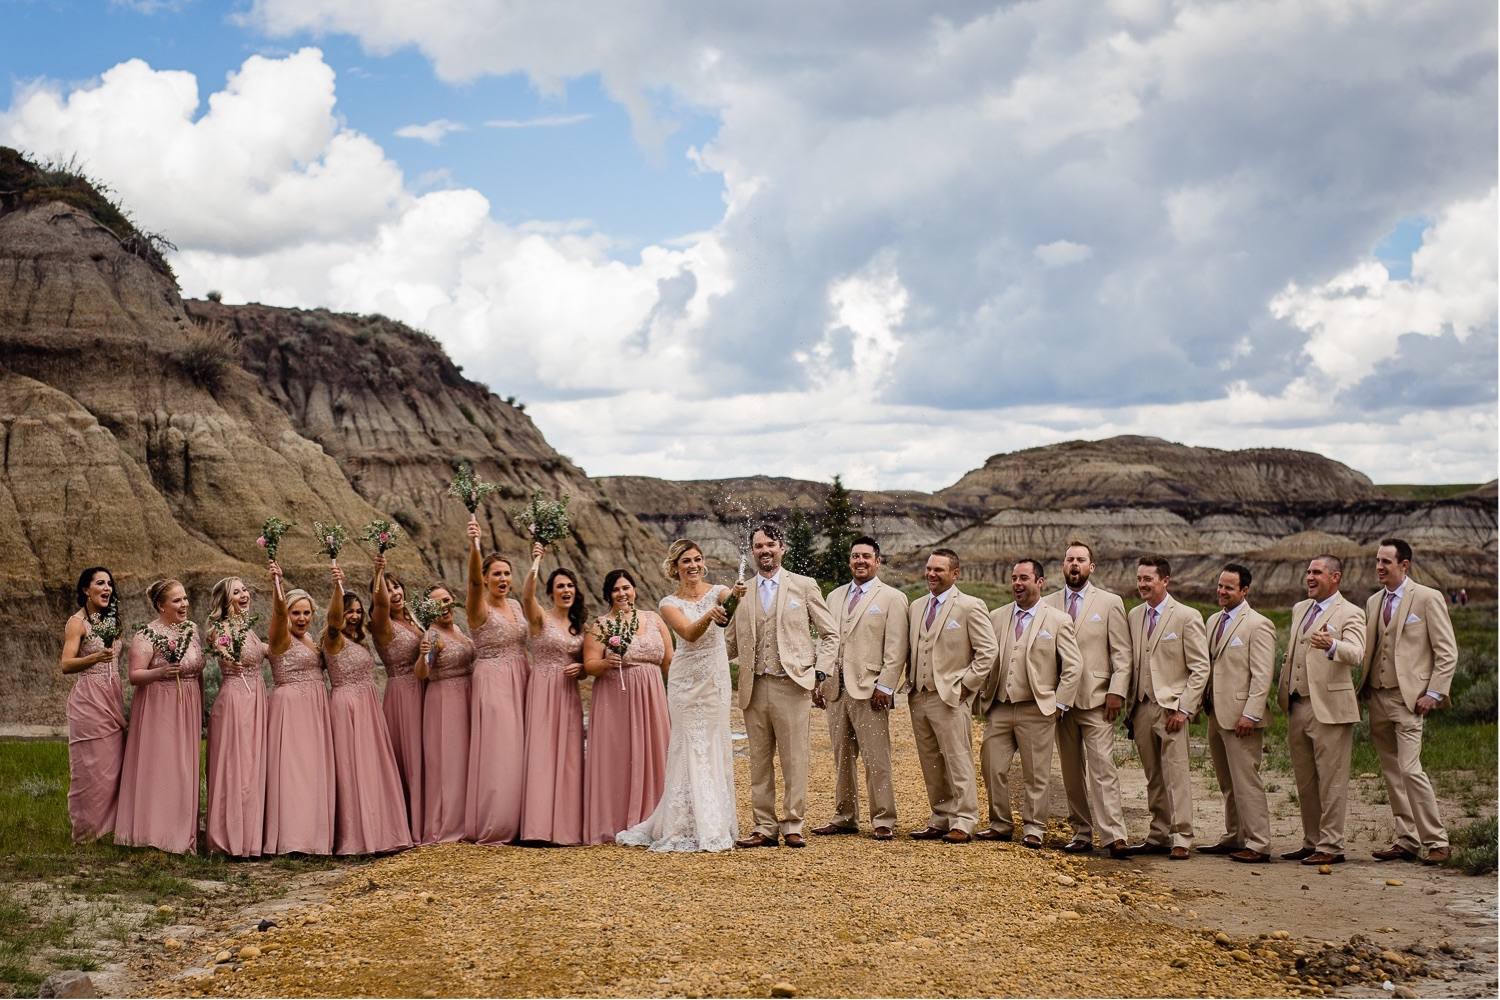 27_Shannon and Dylan June 15 ALL RAW5197_Canyon_Photographer_Alberta_HorseshoeCanyon_Drumheller_Horseshoe_Wedding_Bride_Groom_Weddingparty_Bridalparty.jpg